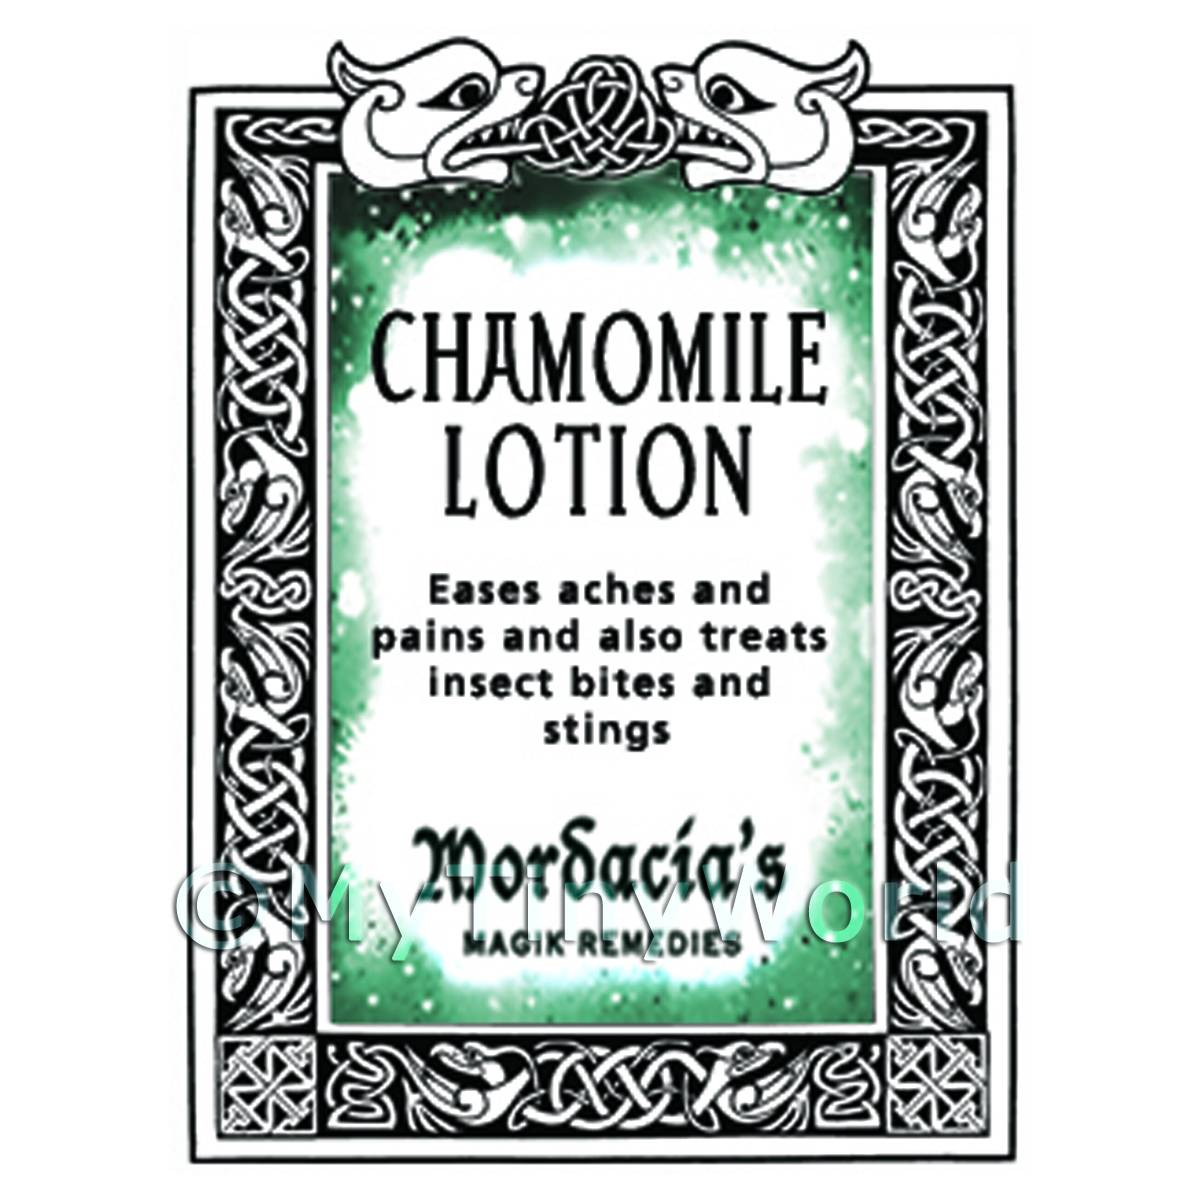 Dolls House Chamomile Lotion Magic Potions Label (S7)